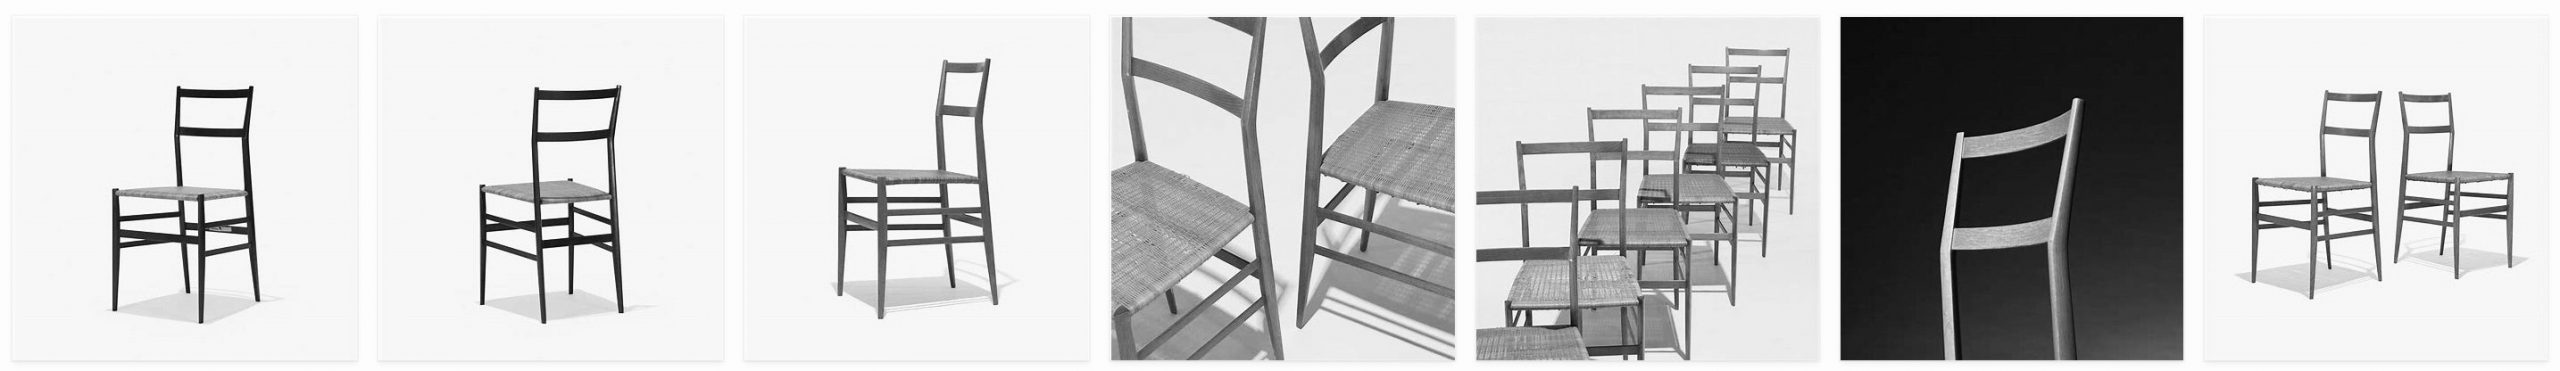 Superleggera chairs by Gio Ponti